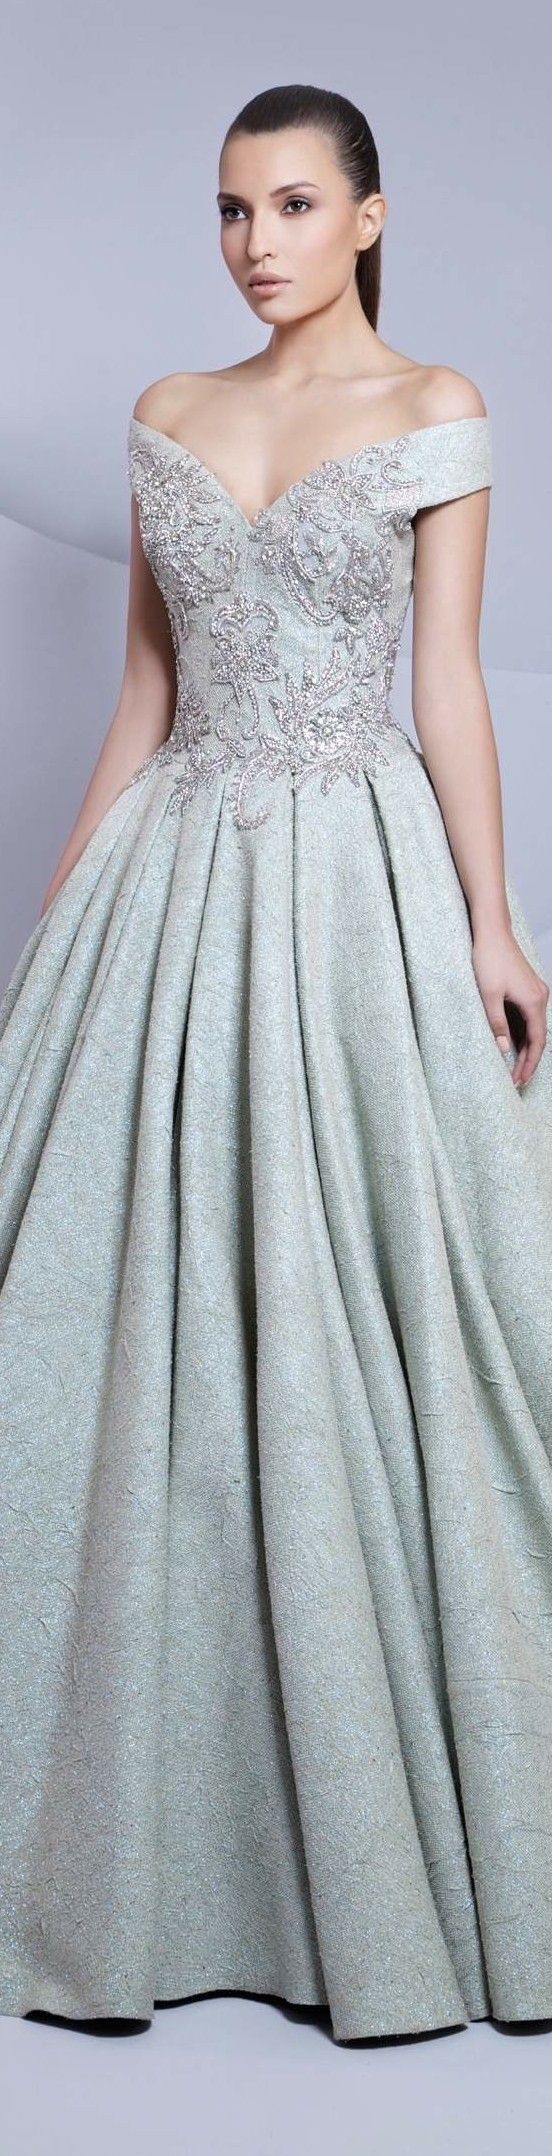 goodly Homecoming party Dresses UK 2016 short Homecoming Dress 2017 ...